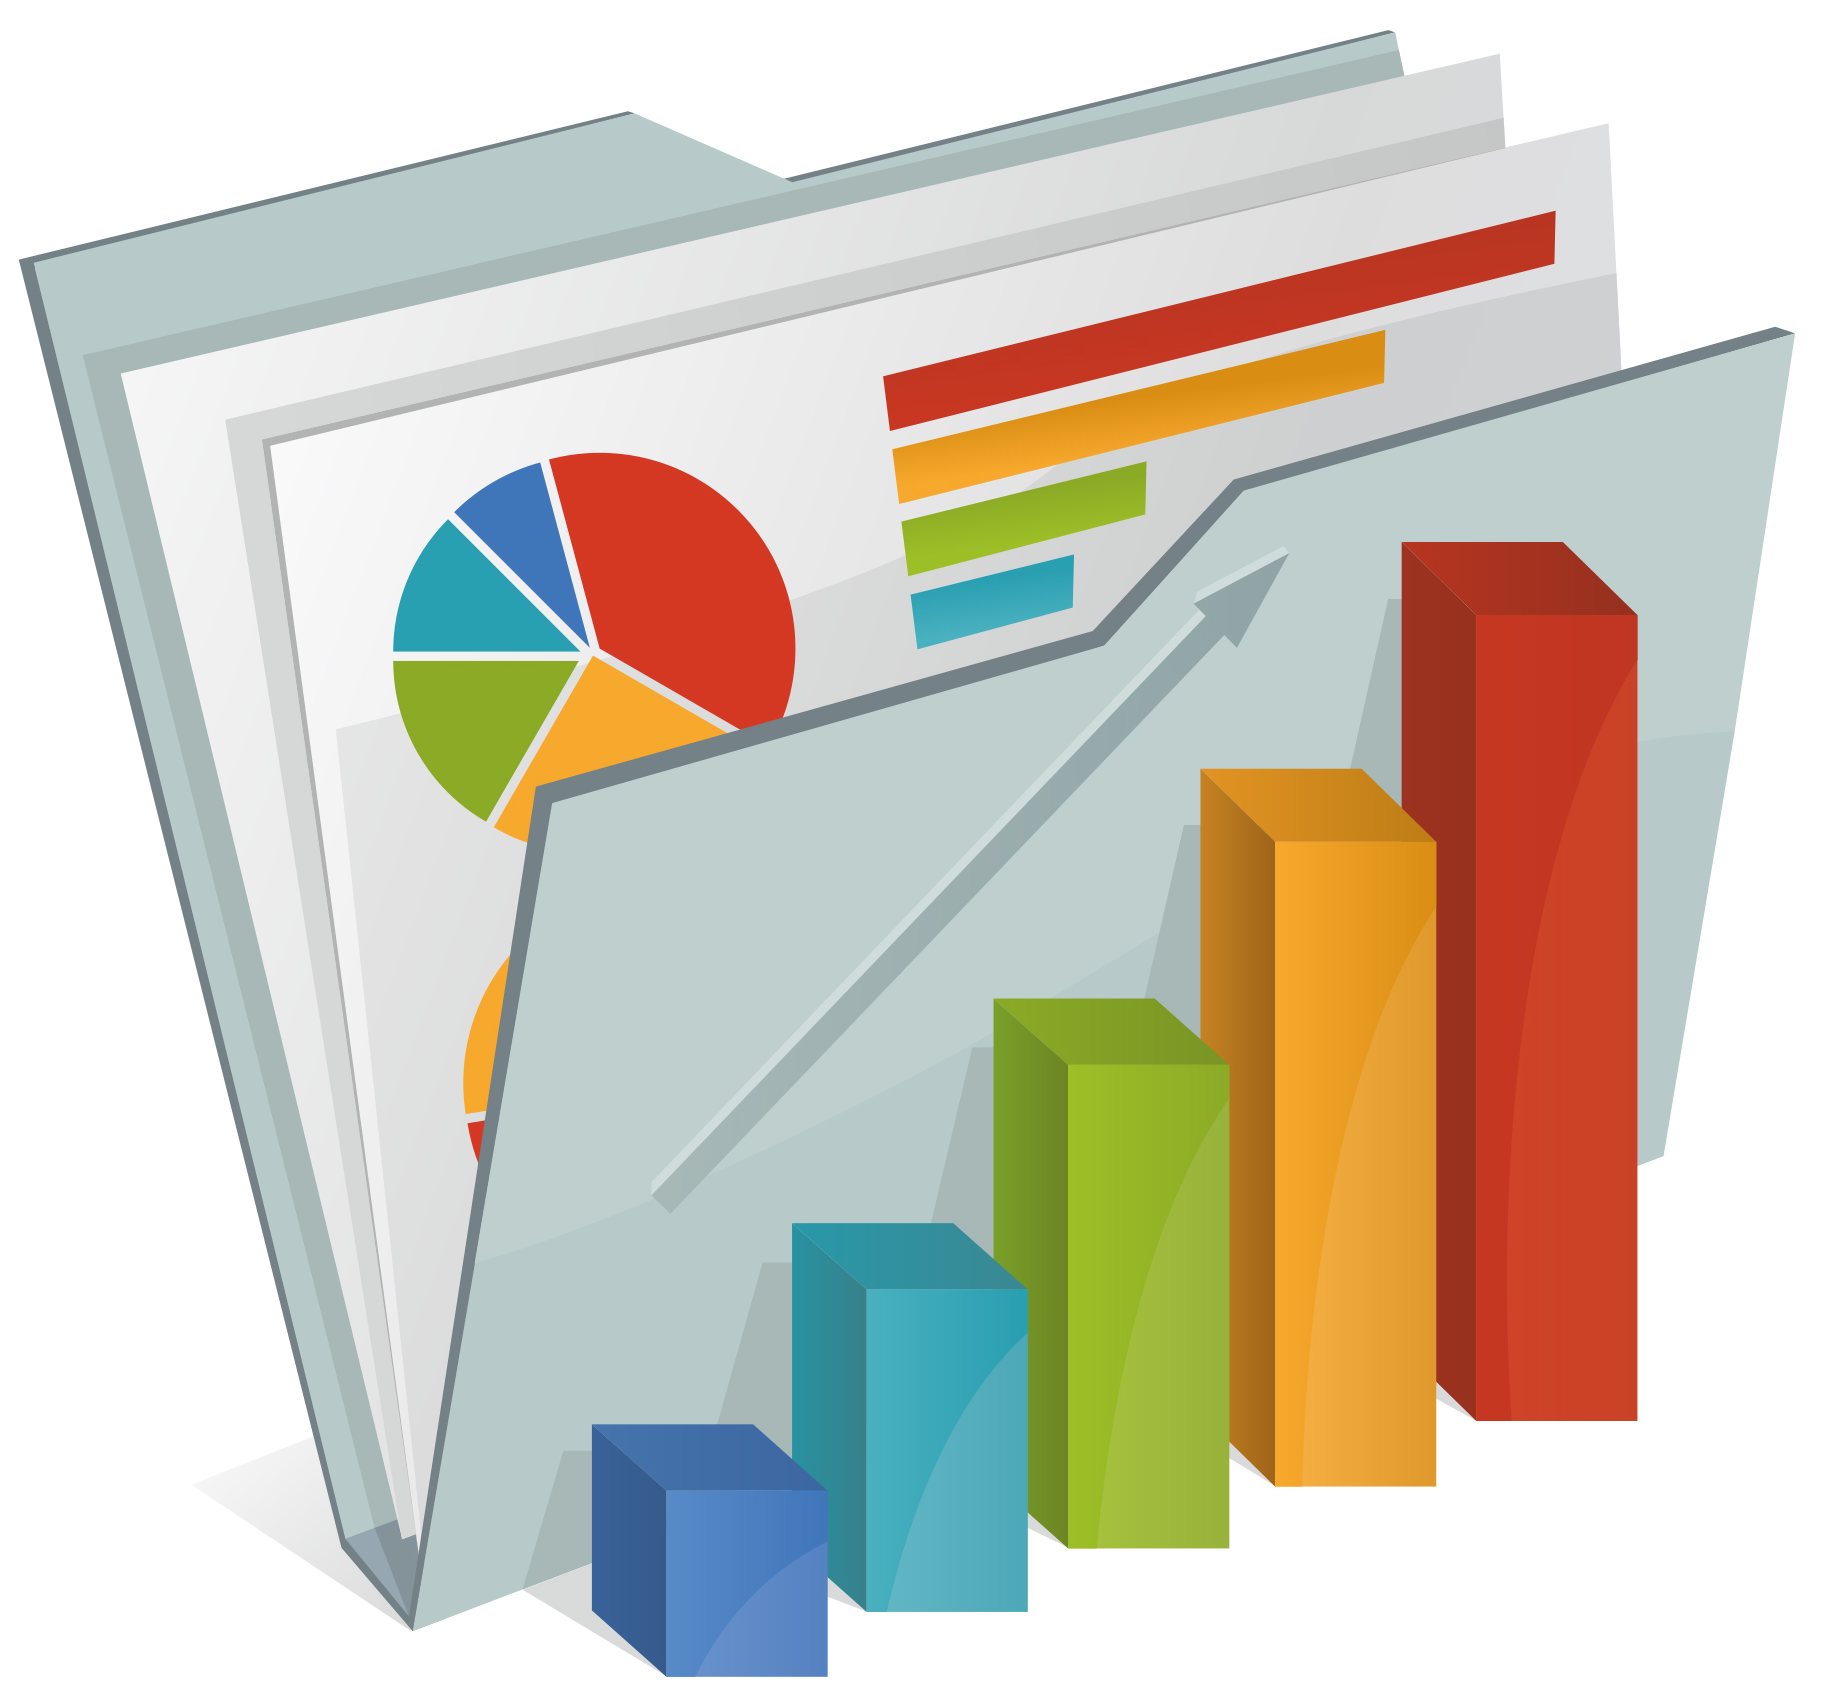 14 Reports And Analytics Icons Images